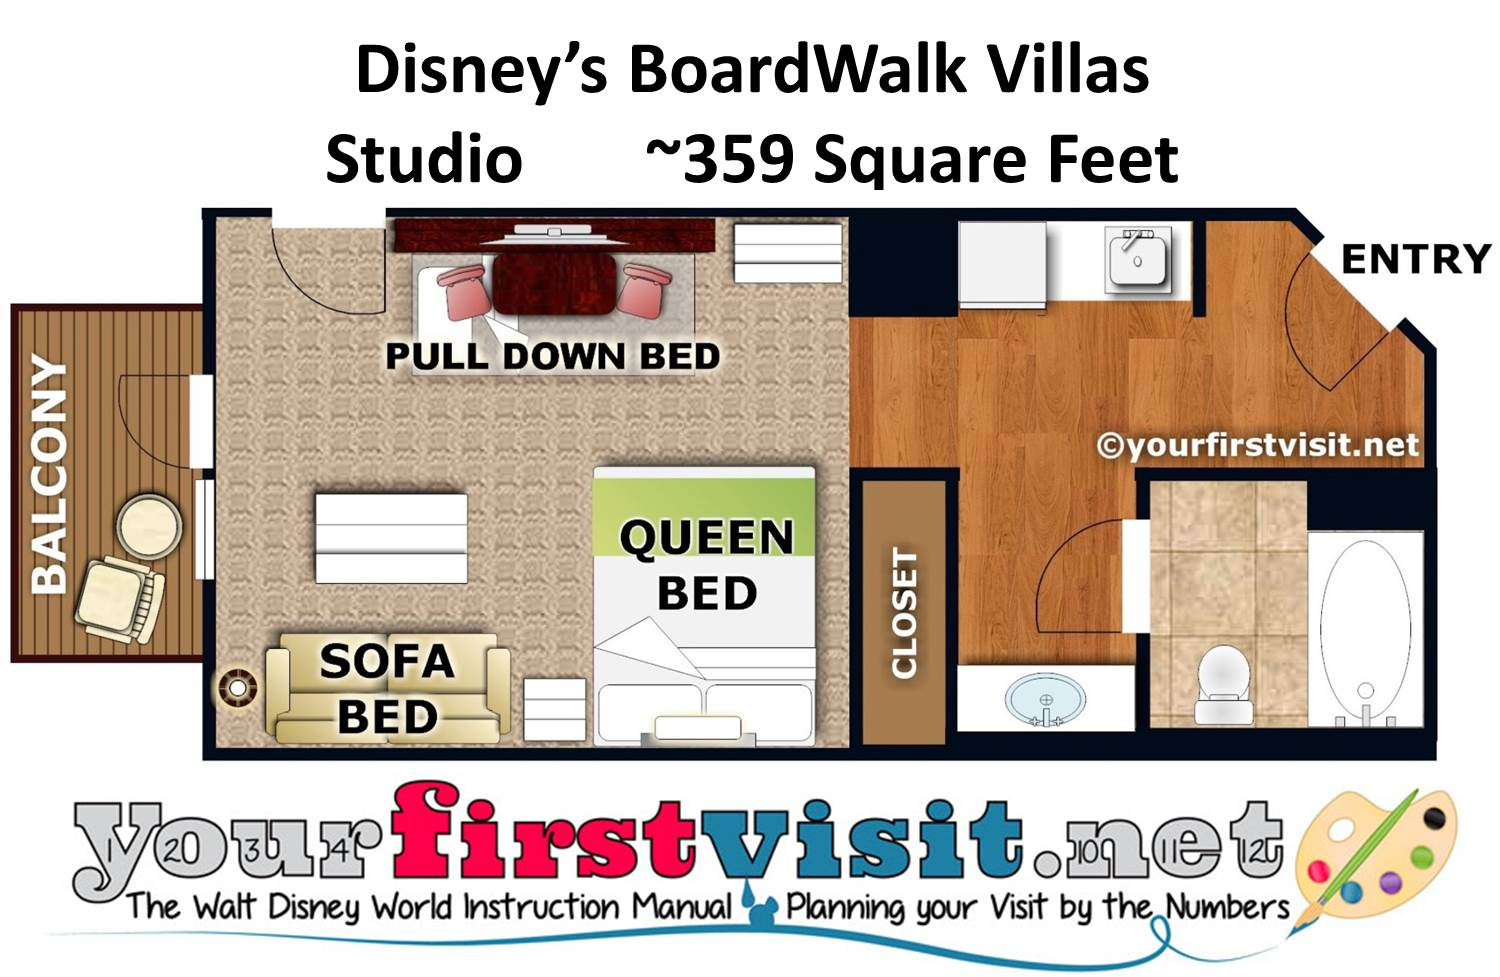 Floor Plan Studio Disney's BoardWalk Villas from yourfirstvisit.net